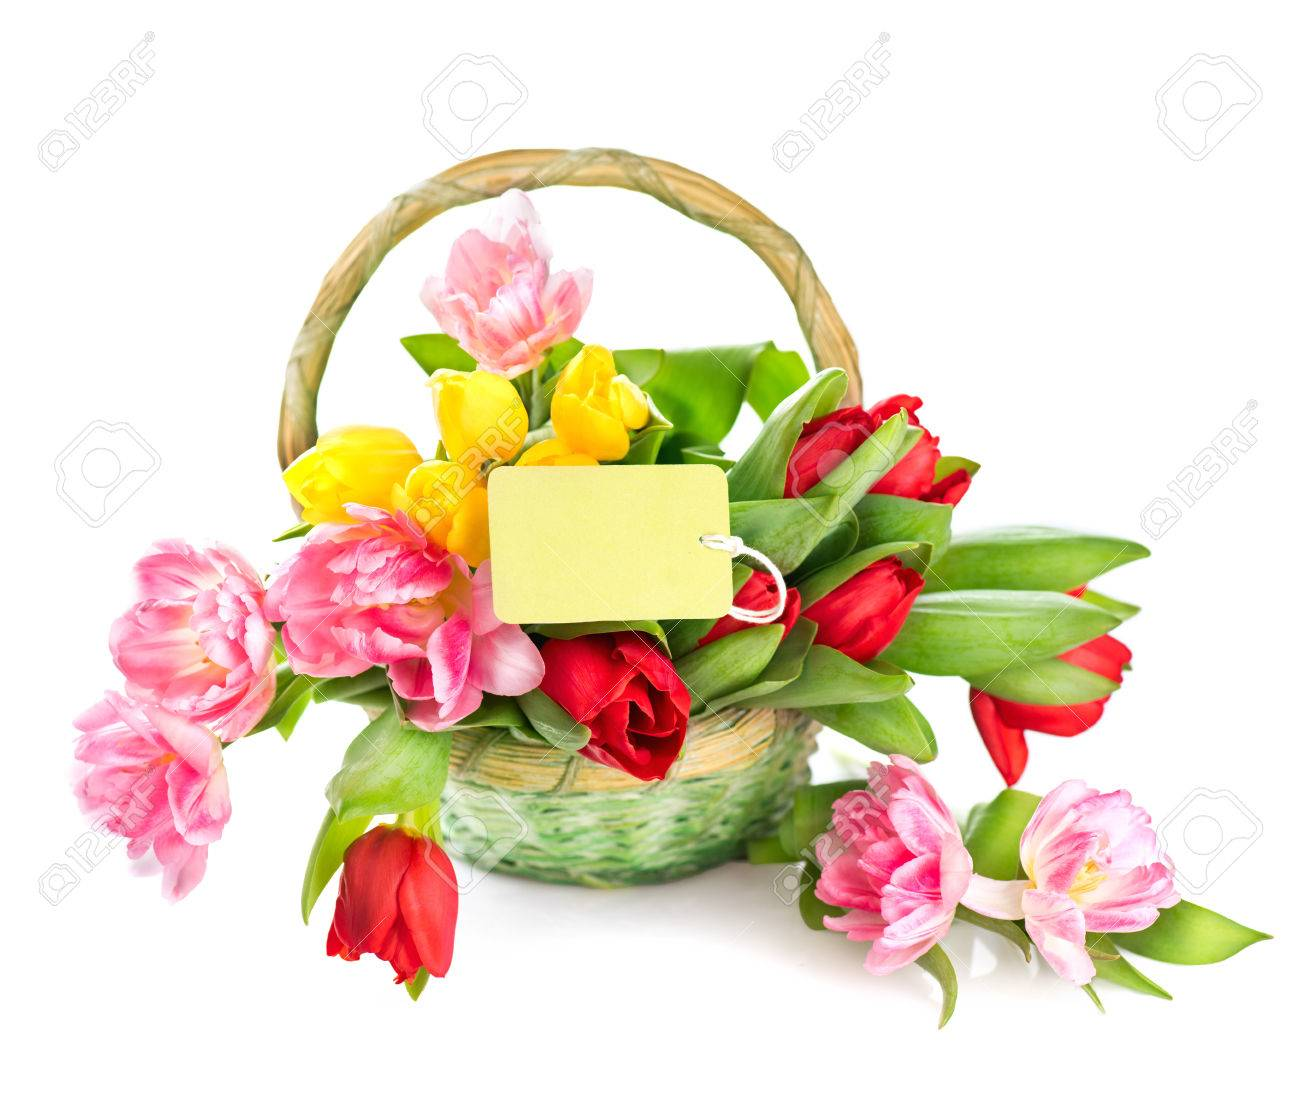 Basket Of Spring Holiday Flowers With Greeting Card Stock Photo